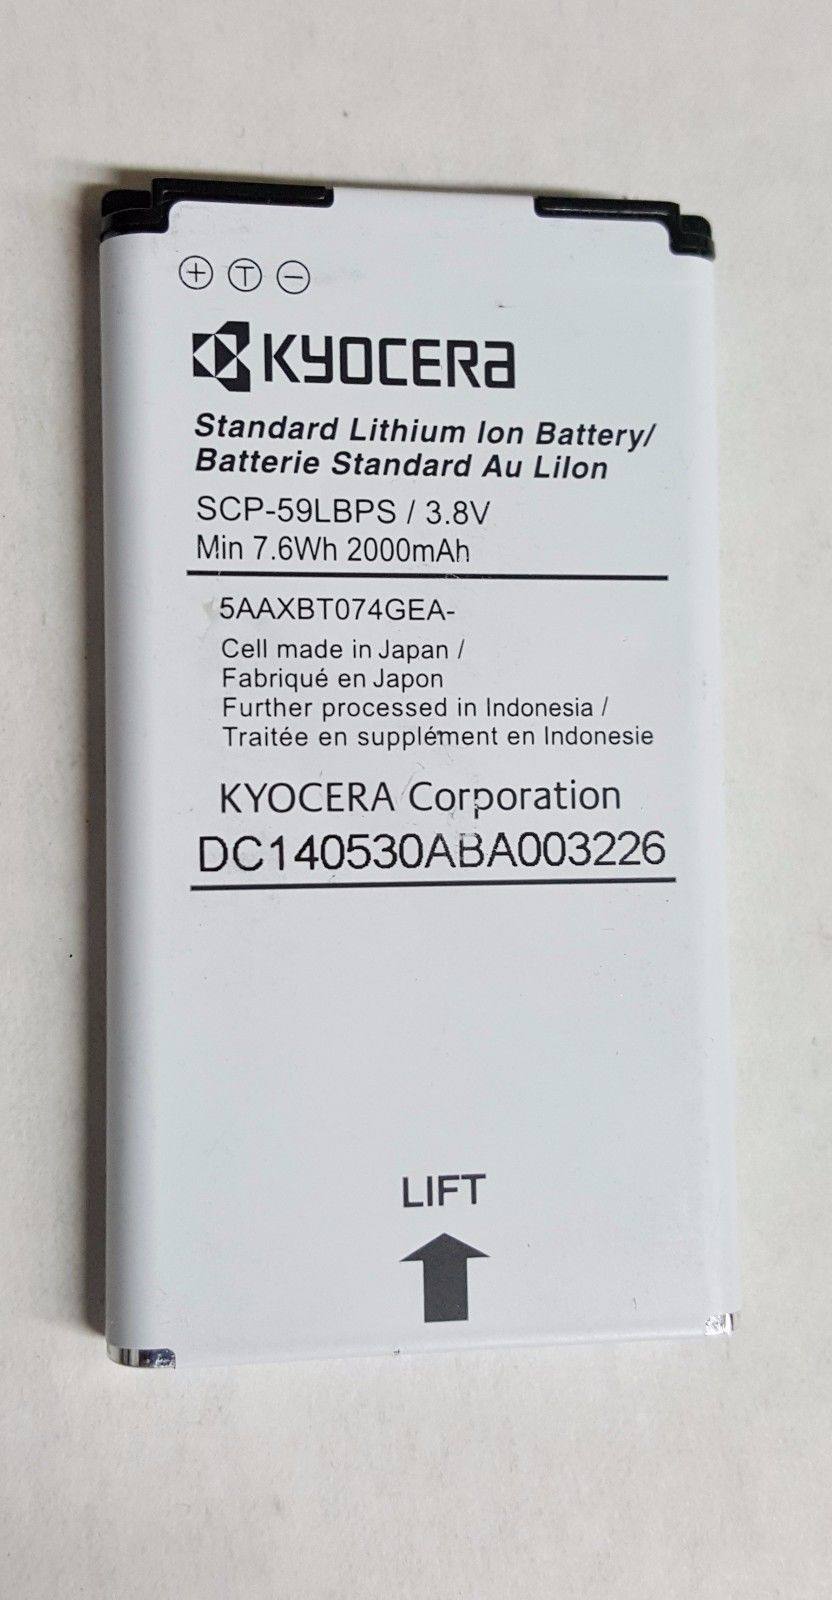 Oem Original Kyocera Scp 59 Lbps Battery For and 50 similar items